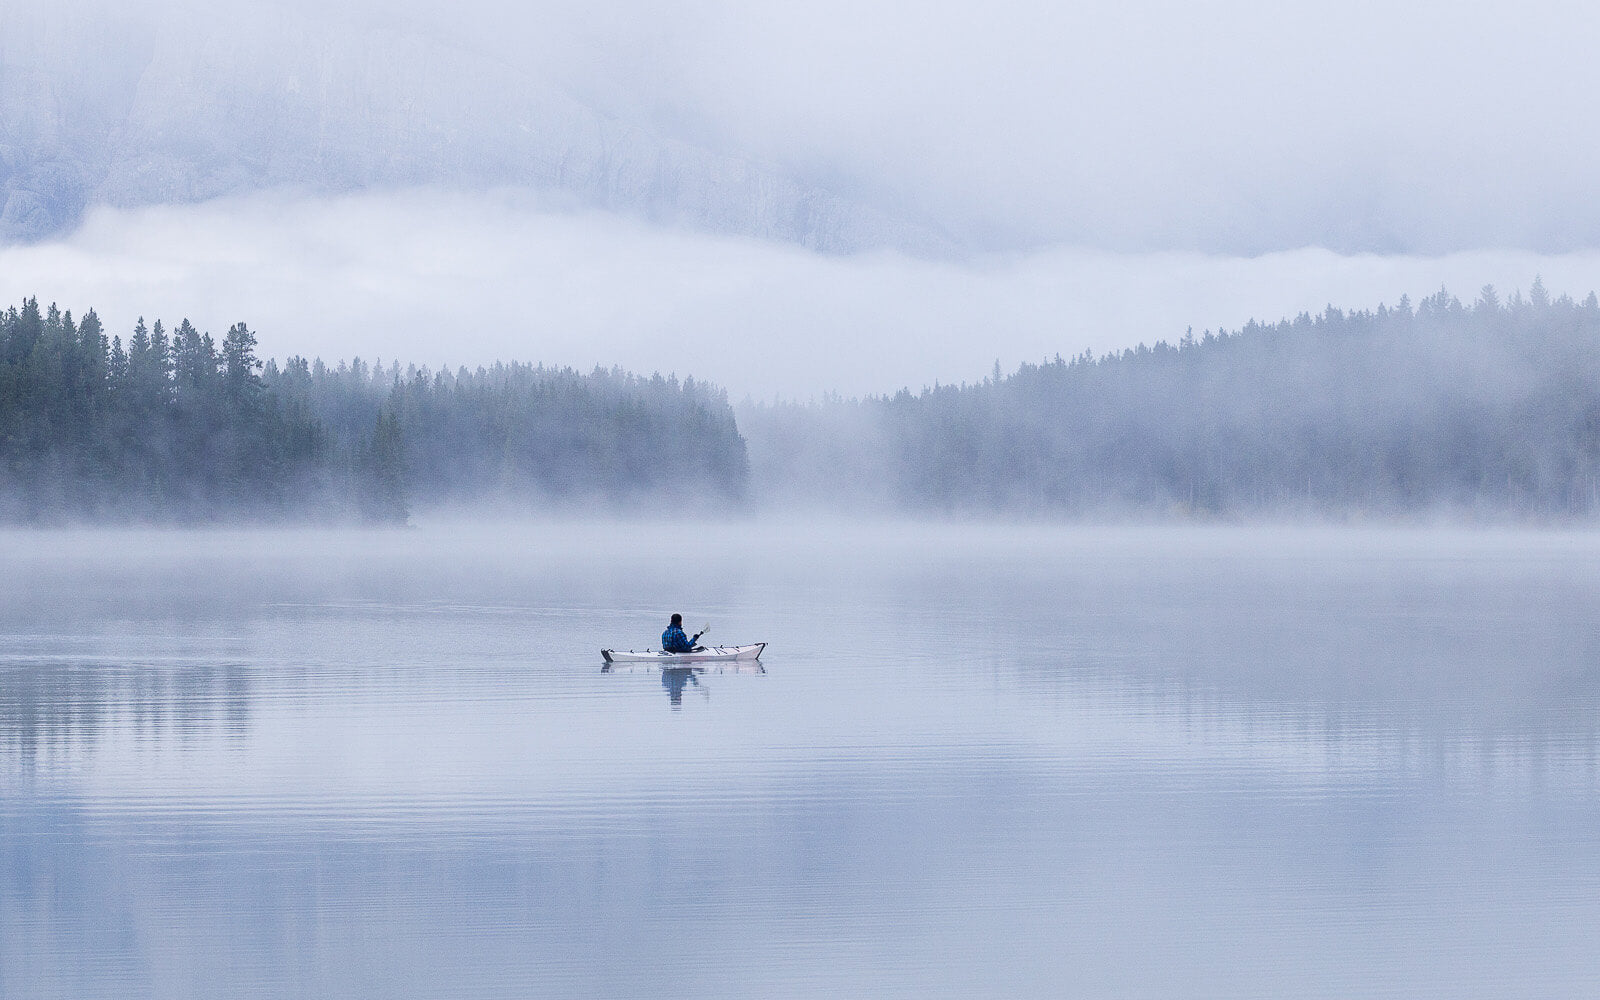 Oru Kayak on misty lake